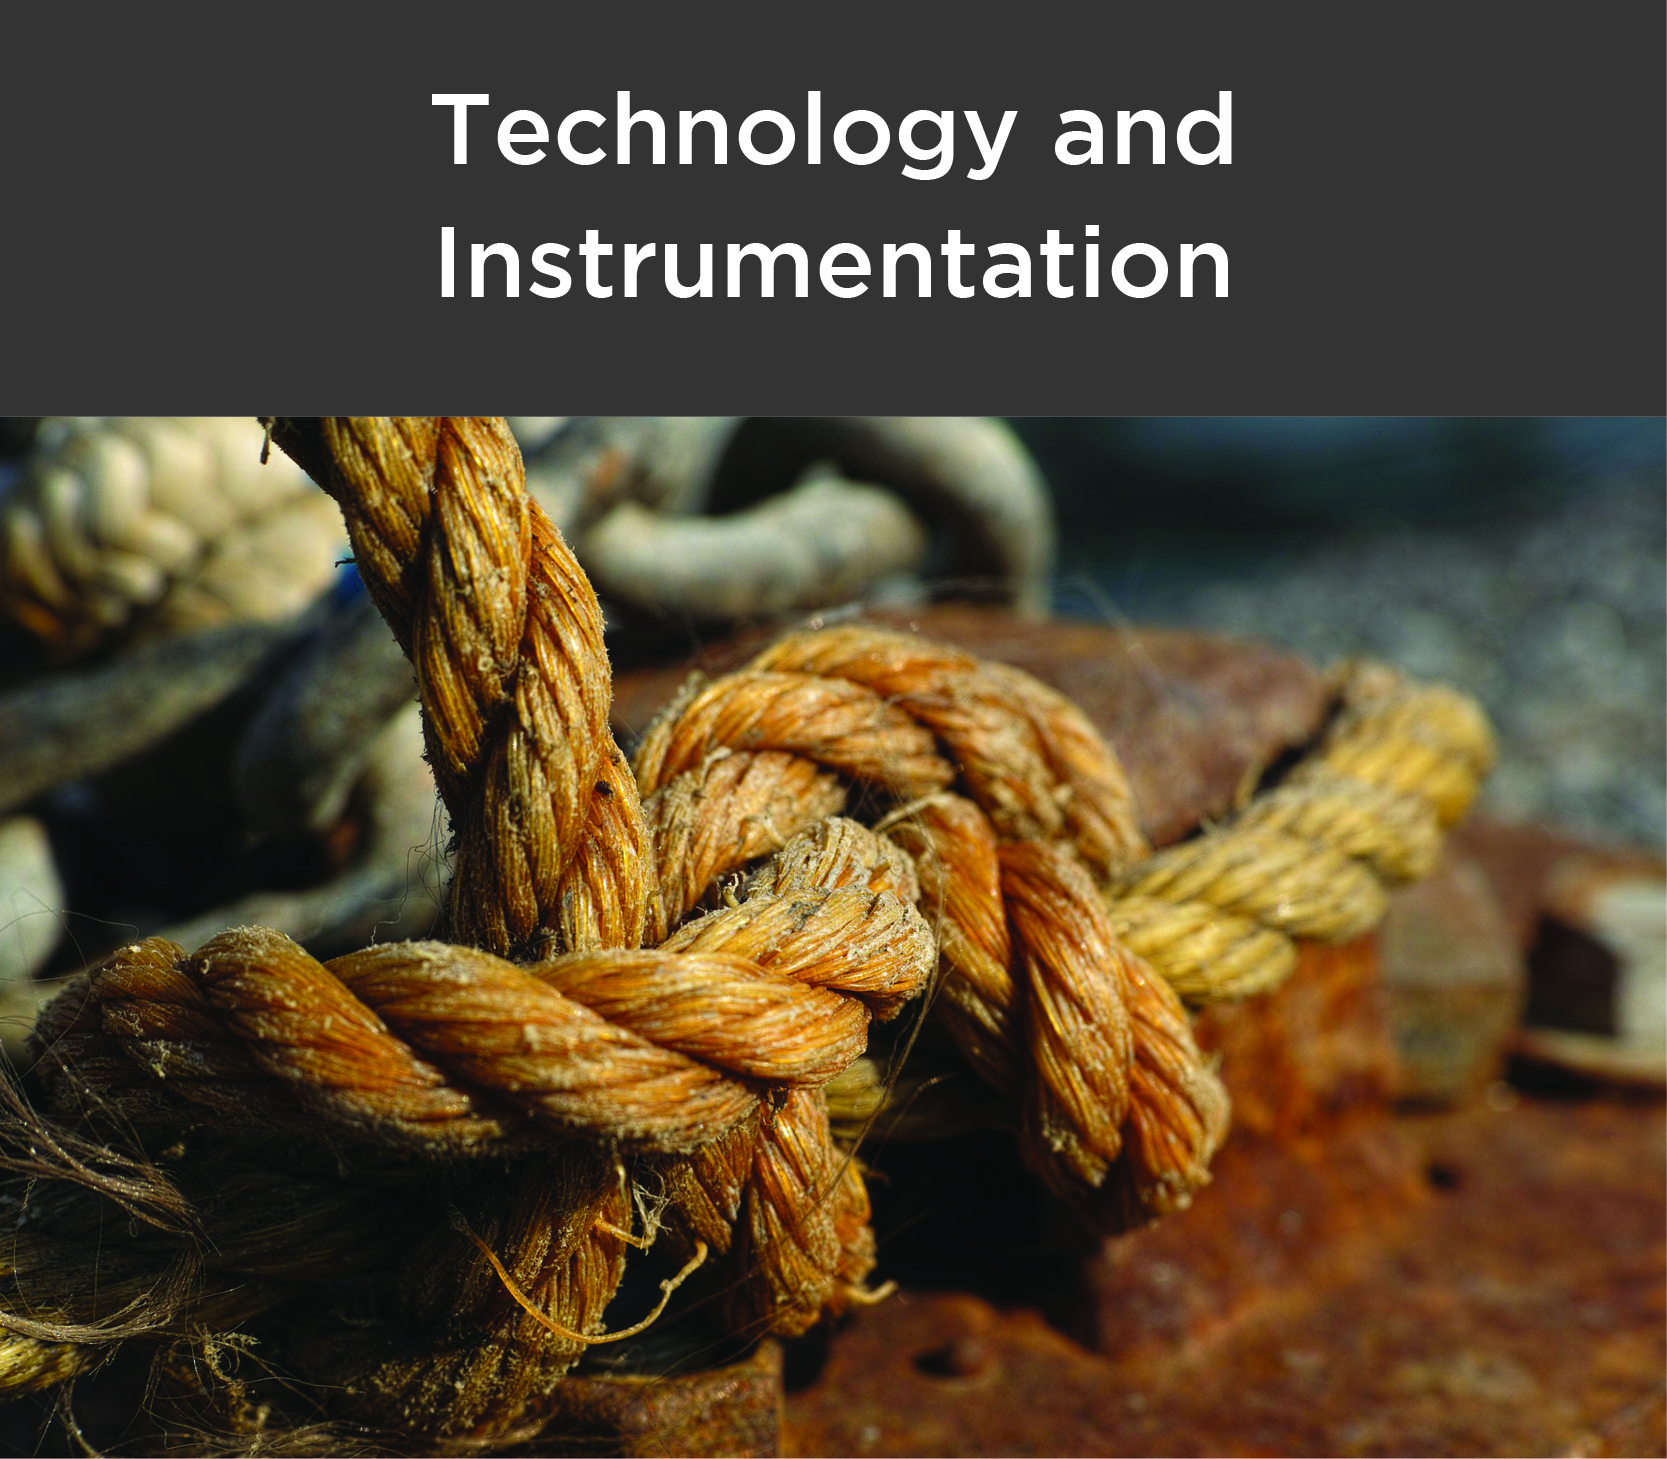 Sector instrumentation and technology